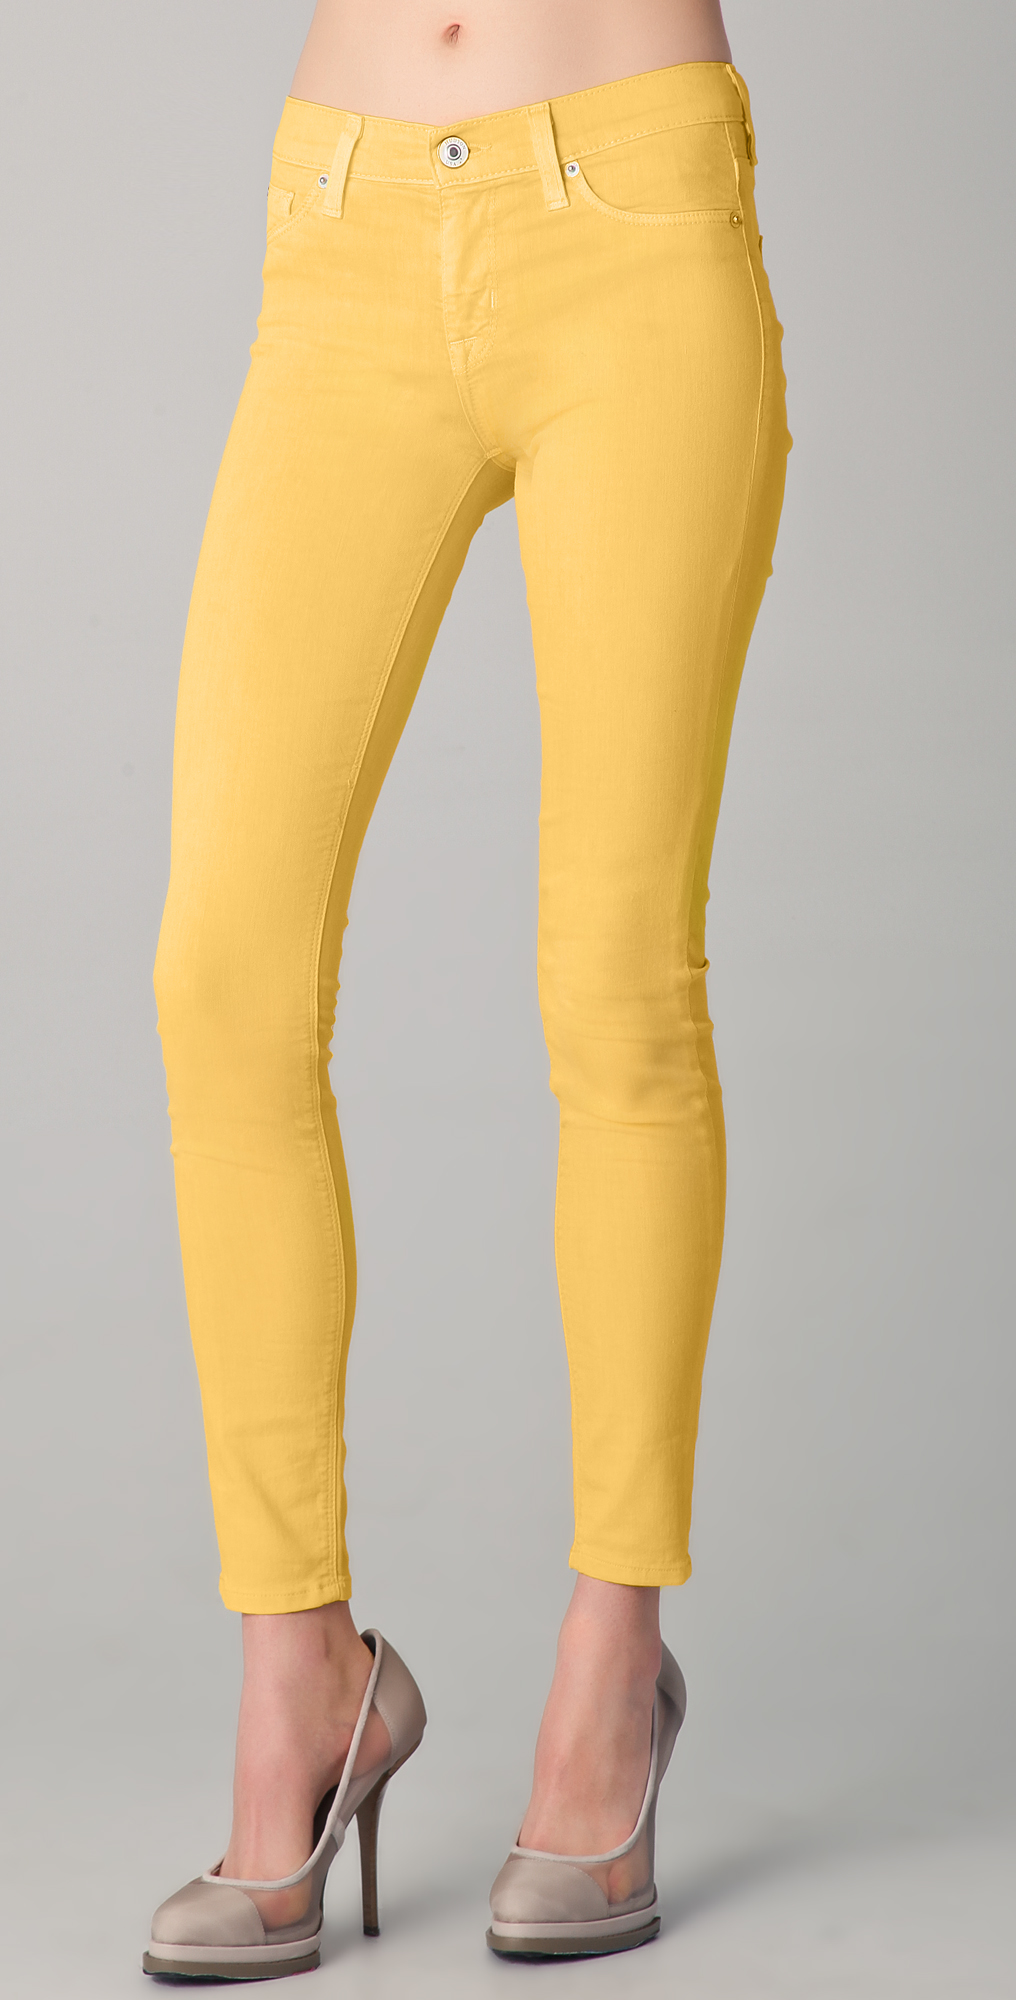 Hudson yellow skinny jeans